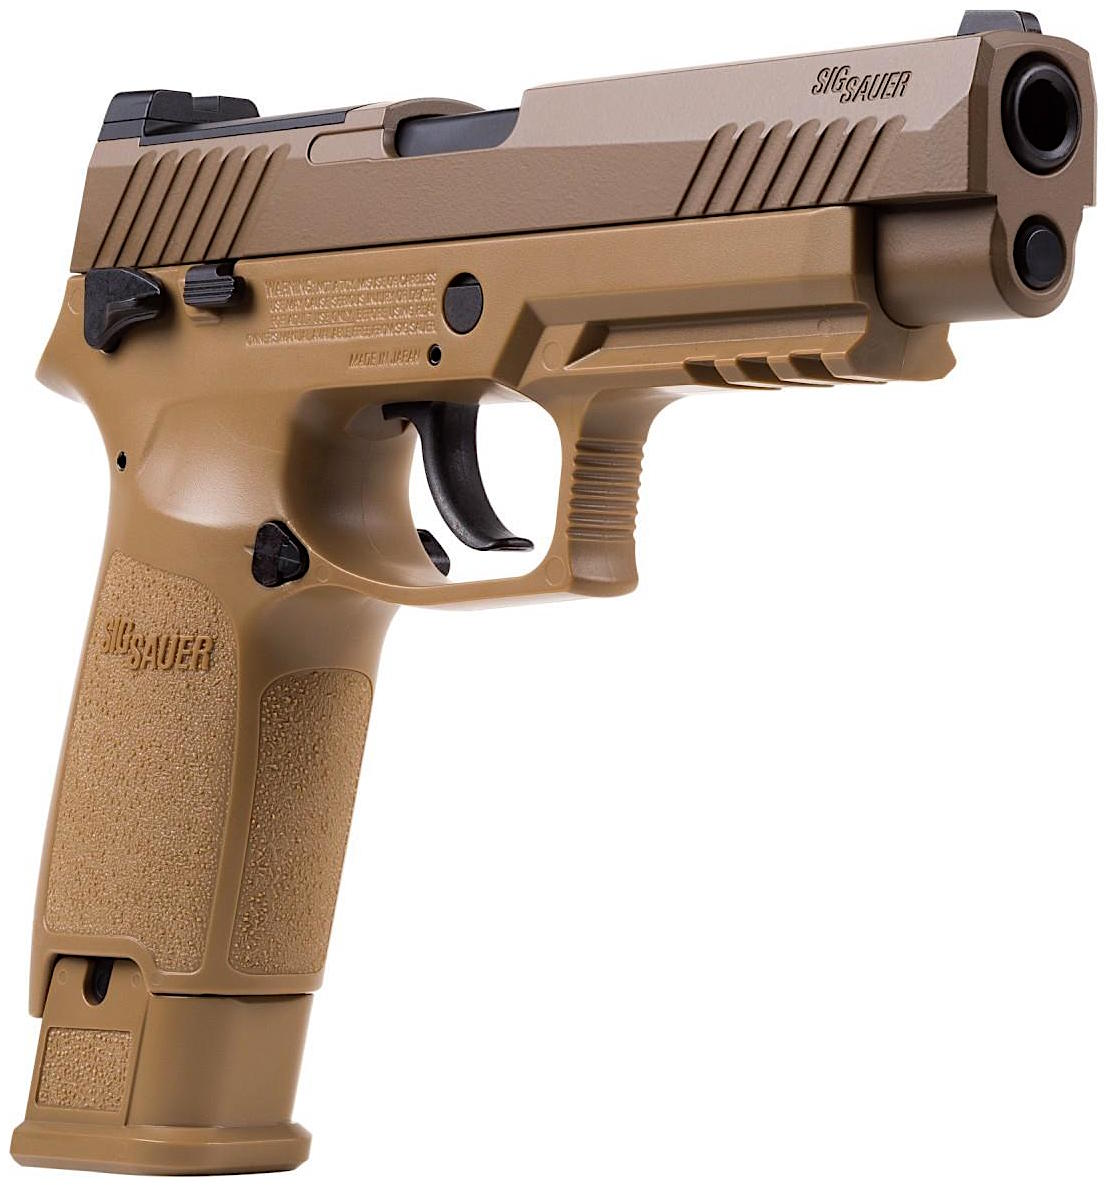 SIG Sauer M17 Blowback Pellet Pistol Right Side Angle.jpg